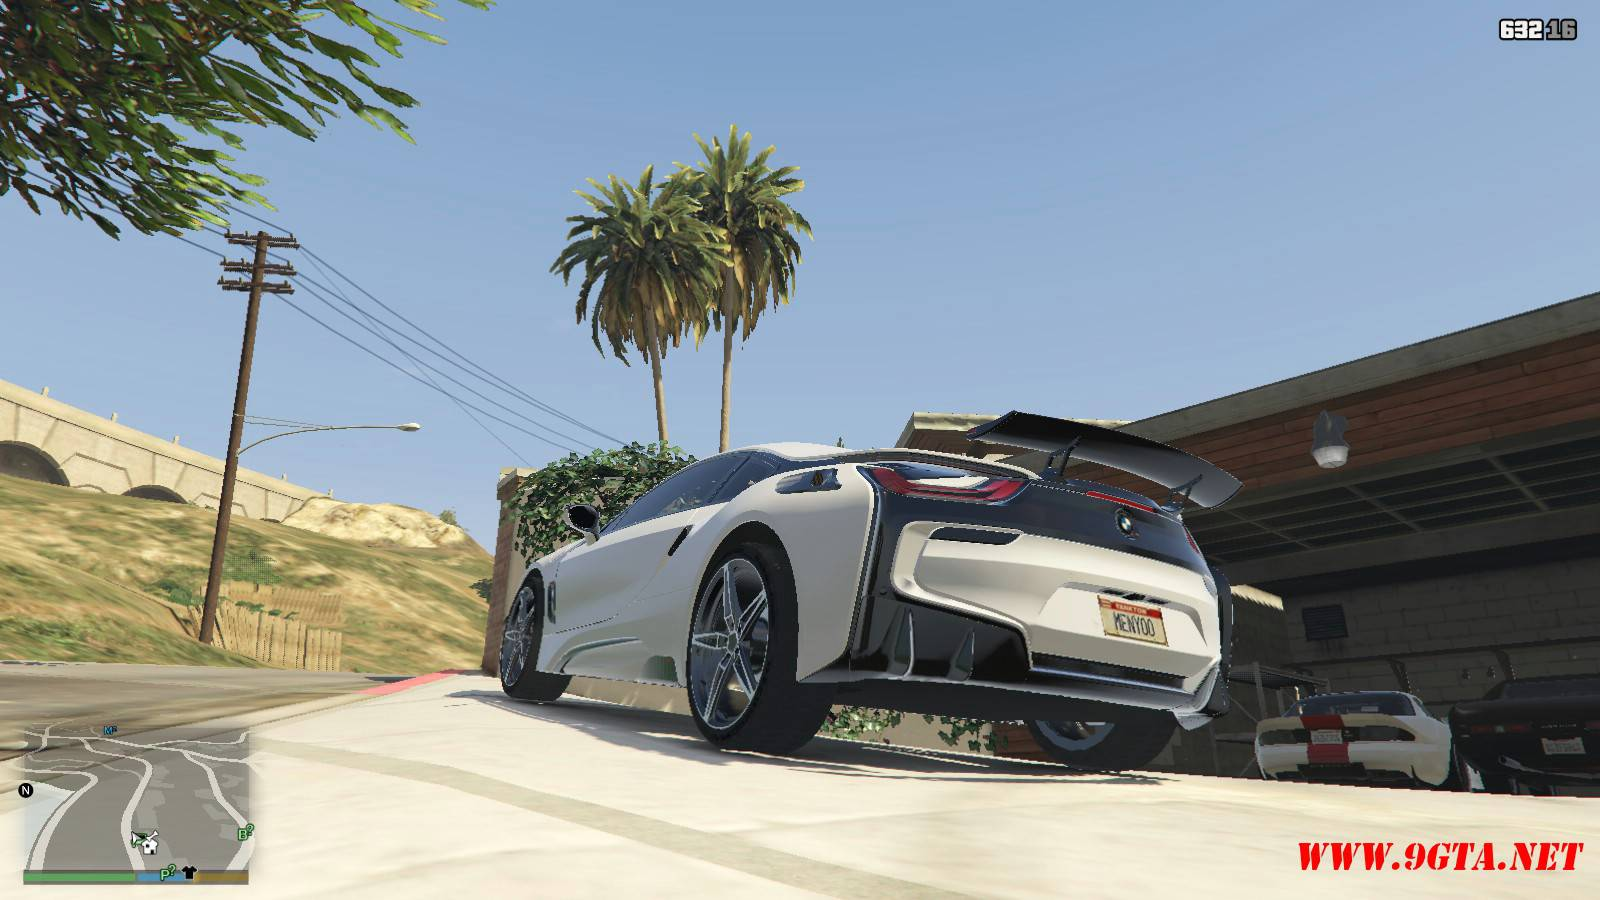 BMW i8 AC Schinitzer ACS8 Mod For GTA5 (4)